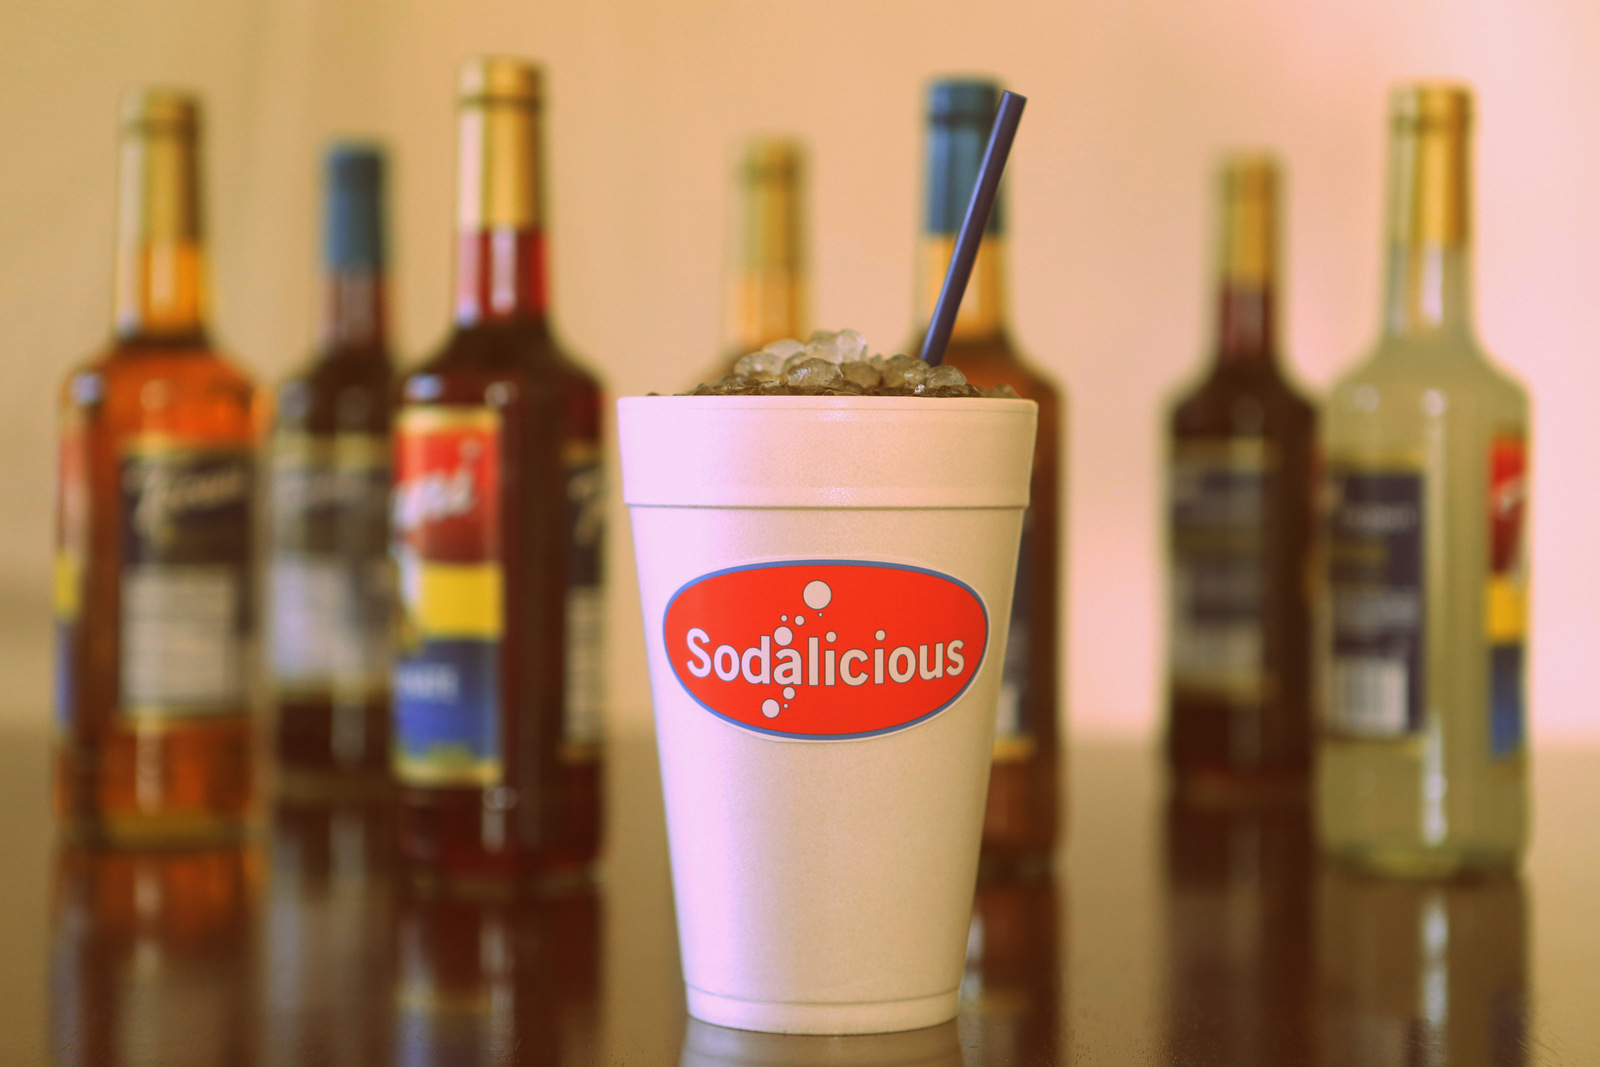 A Sodalicious cup on a table